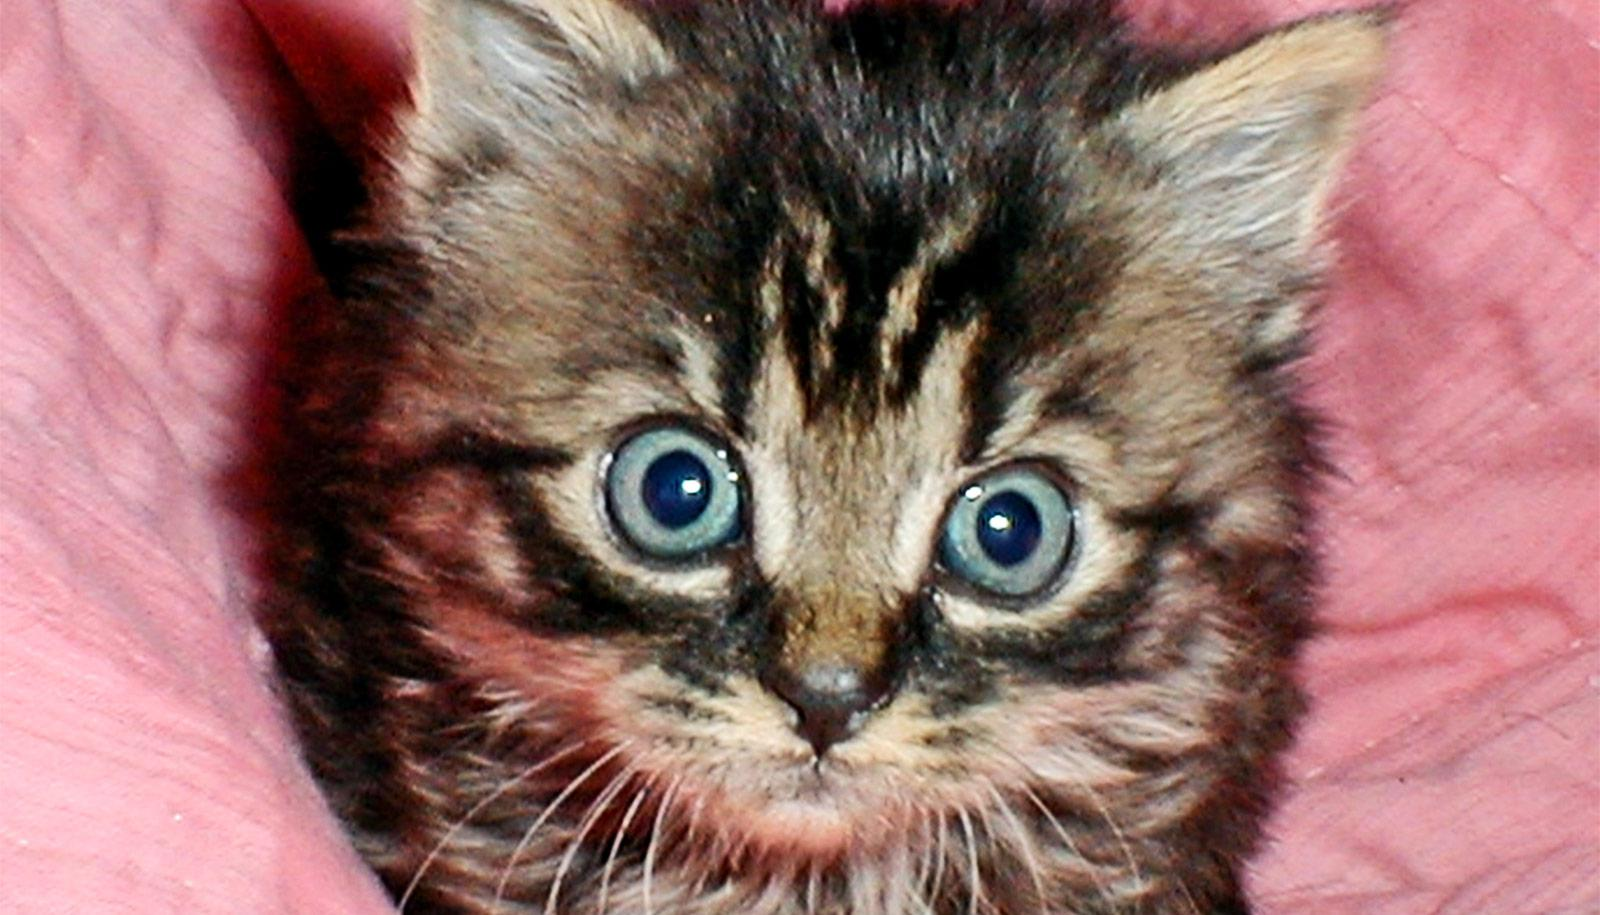 A kitten with blue eyes looks up at the camera